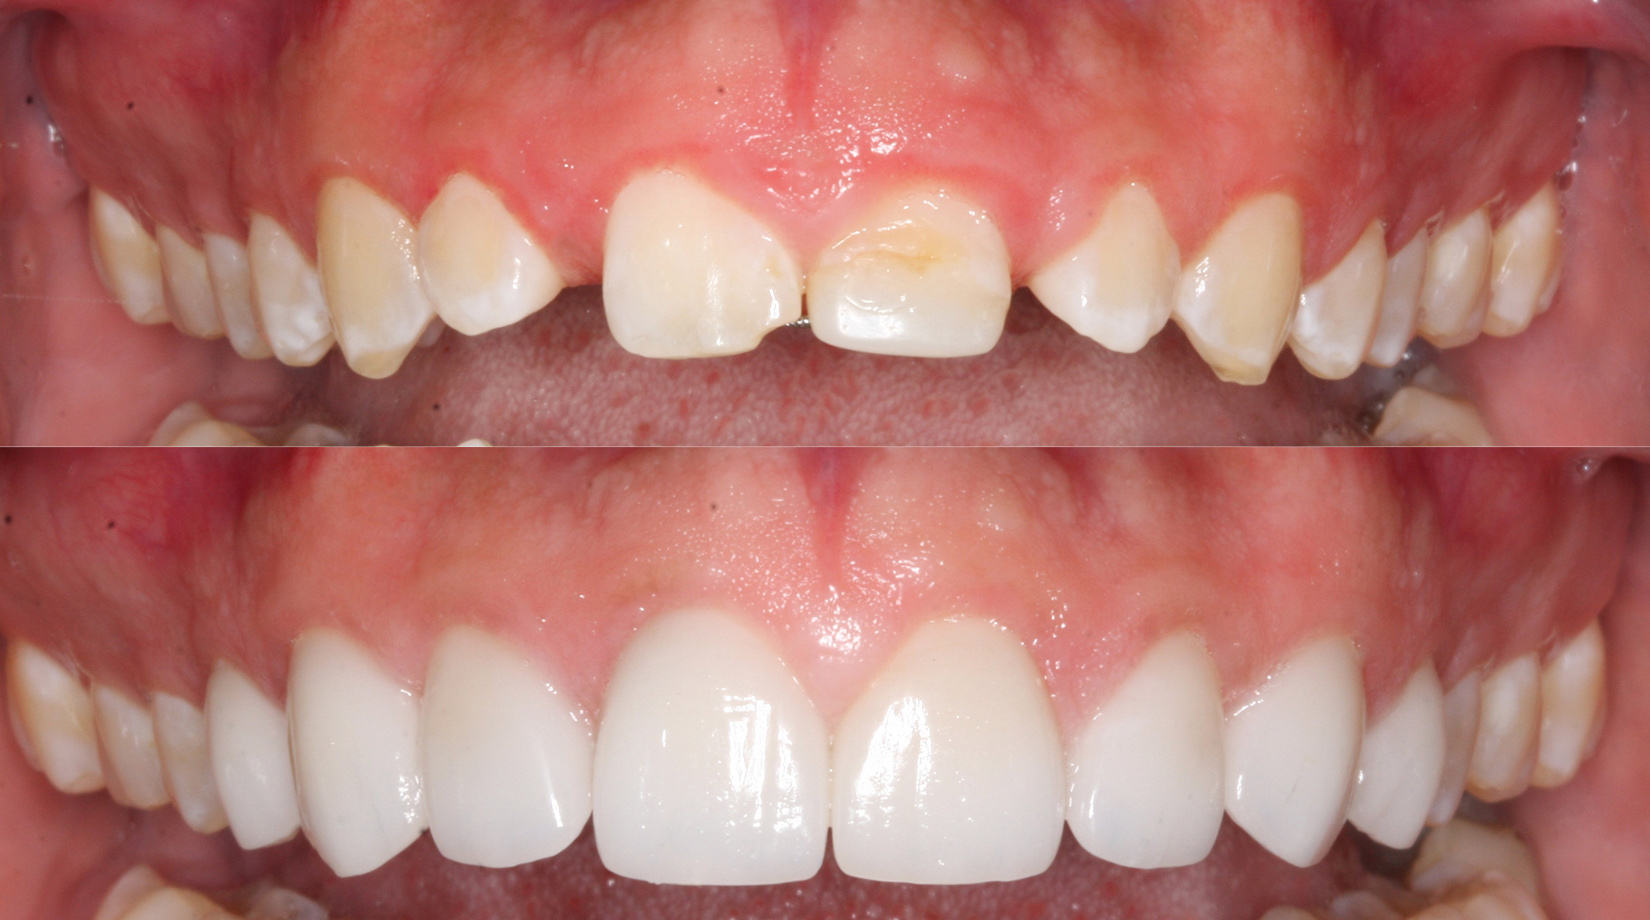 Richard Crosby DDS image 6